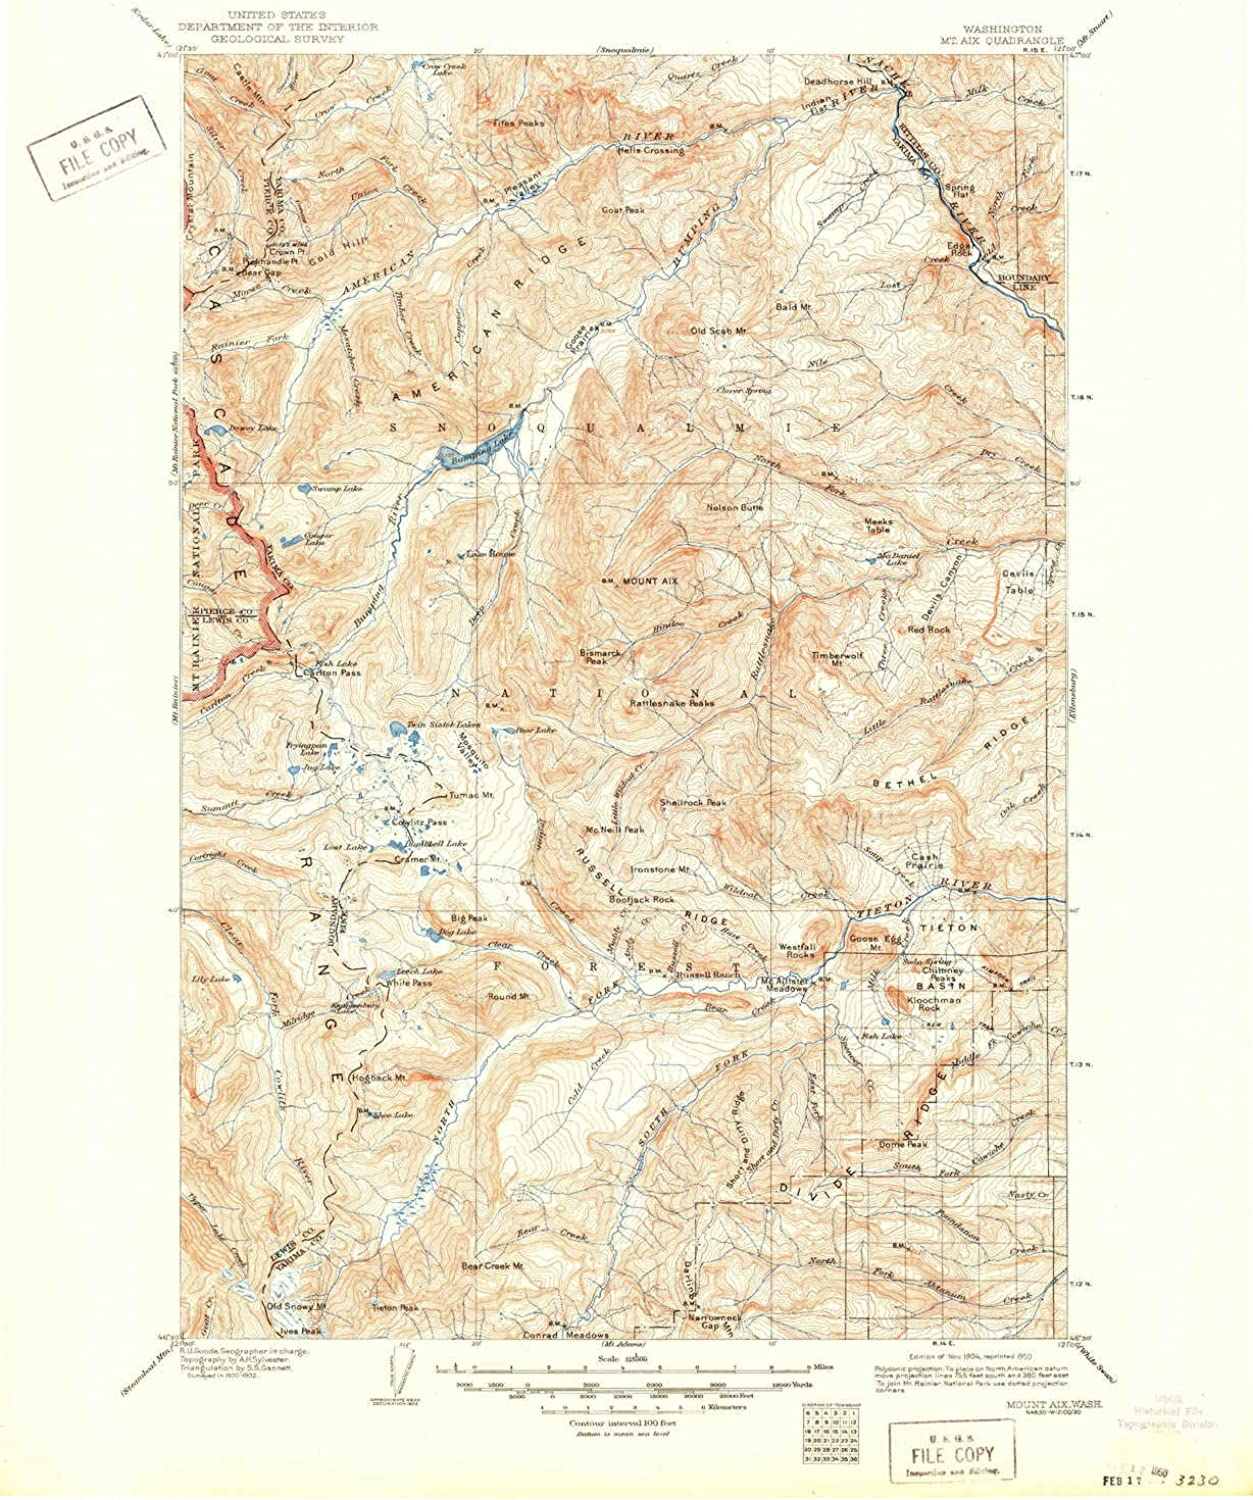 Mount Aix WA topo map, 1 125000 Scale, 30 X 30 Minute, Historical, 1904, Updated 1950, 20.9 x 17.1 in